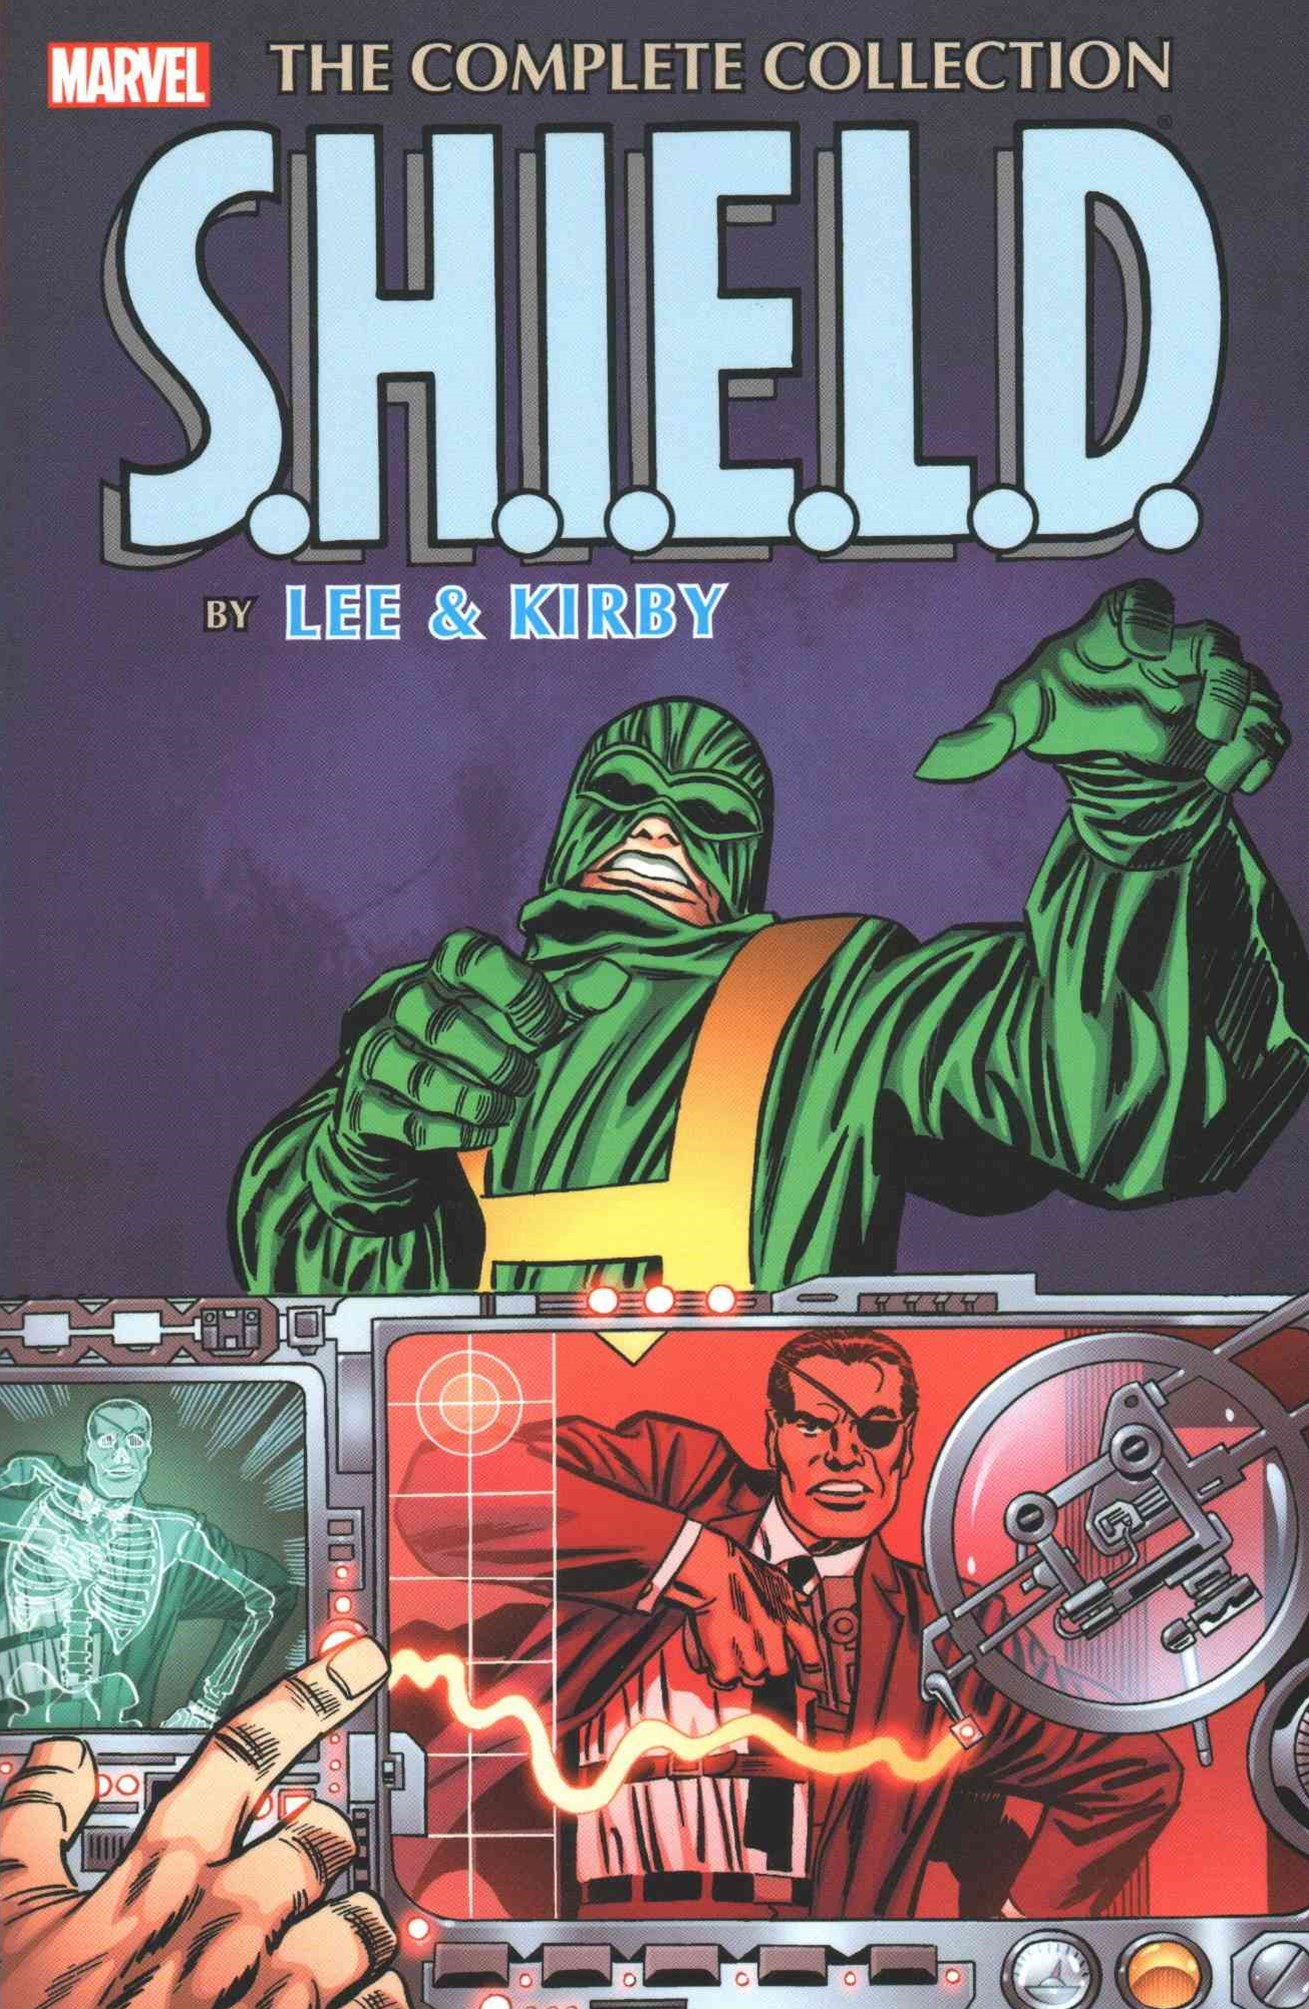 S. H. I. E. L. D. by Lee and Kirby